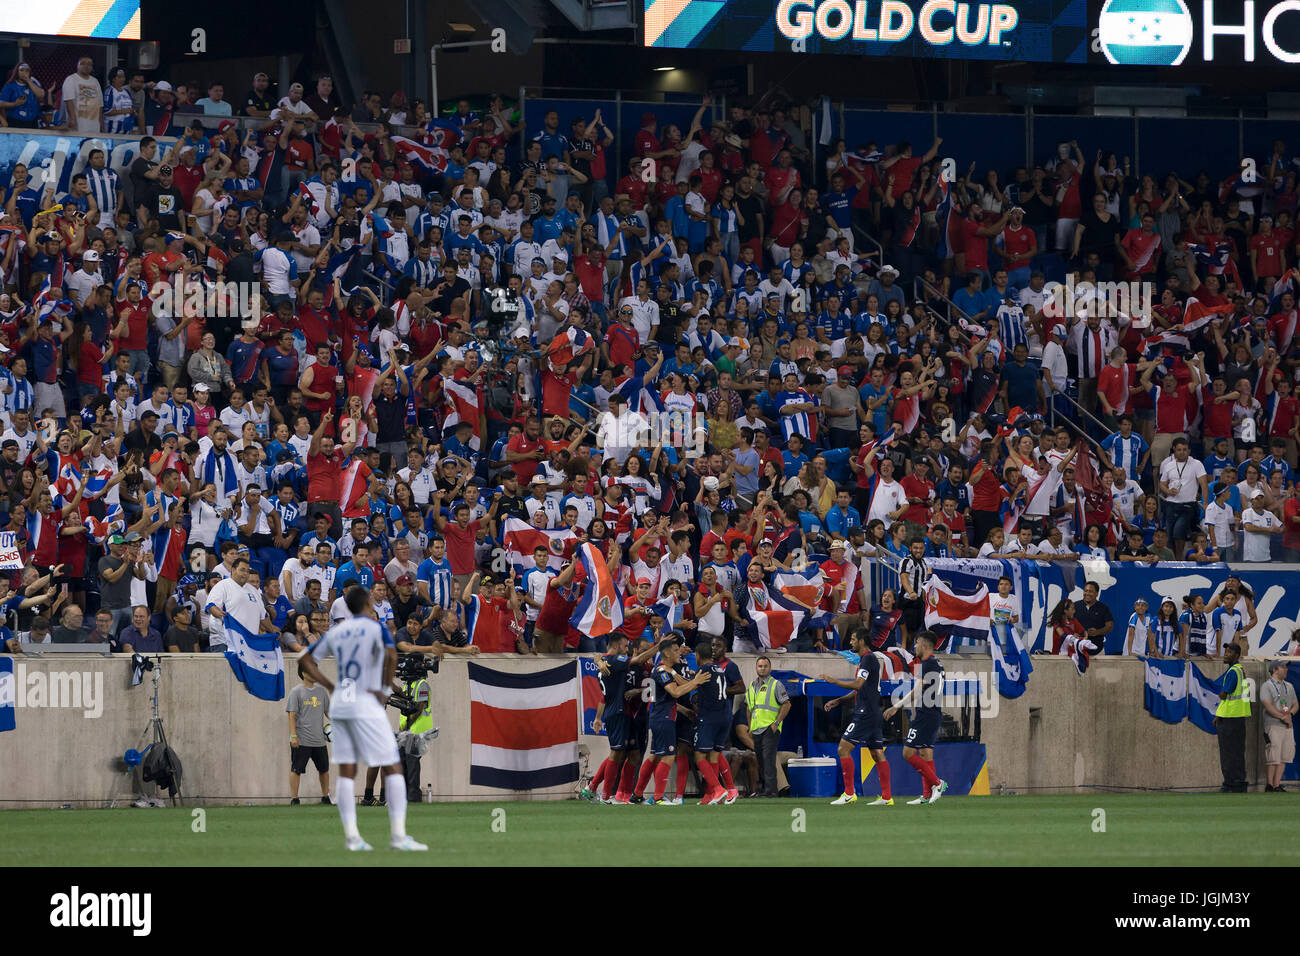 b7a509e70 Fans of Costa Rica National team and Honduras National team attend CONCACAF  Gold Cup group stage game at Red Bulls Arena Costa Rica won 1 - 0 (Photo by  Lev ...